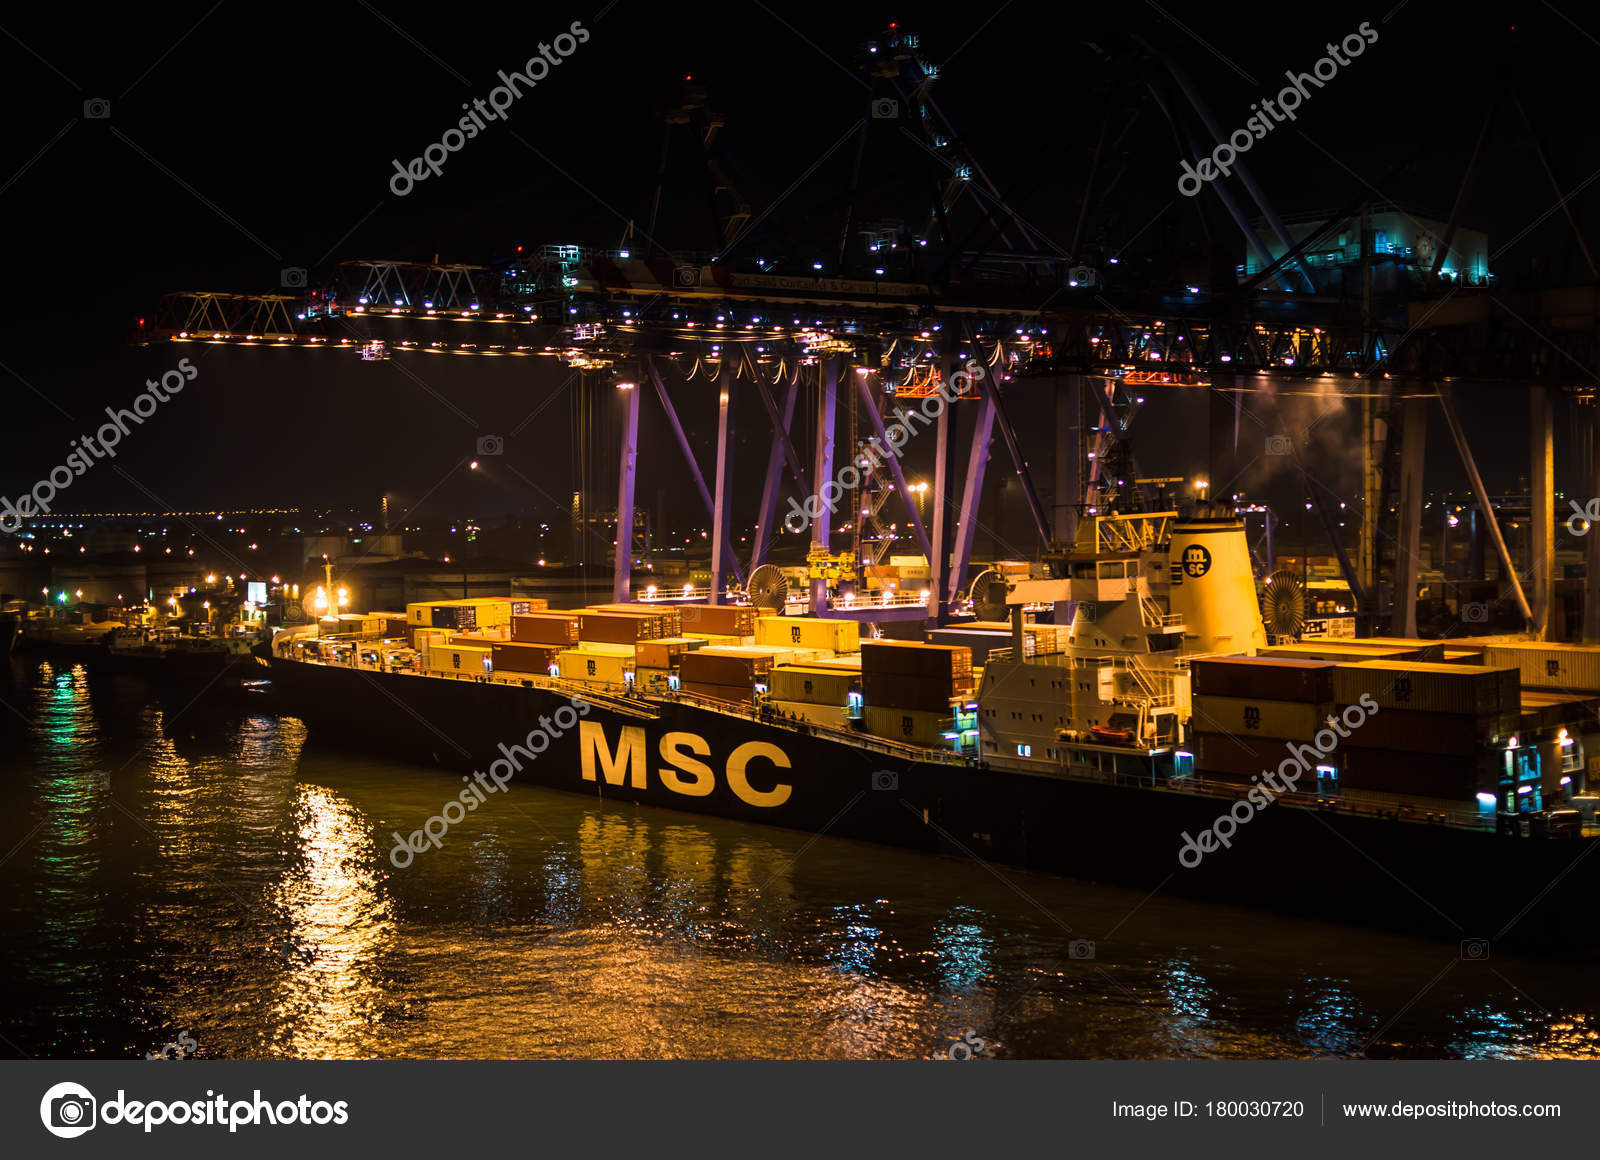 Port said egypt november 4 2017 msc line vessel container ship port said egypt november 4 2017 msc line vessel container ship during loading operations in cargo portght landscape msc is the worlds second largest publicscrutiny Gallery